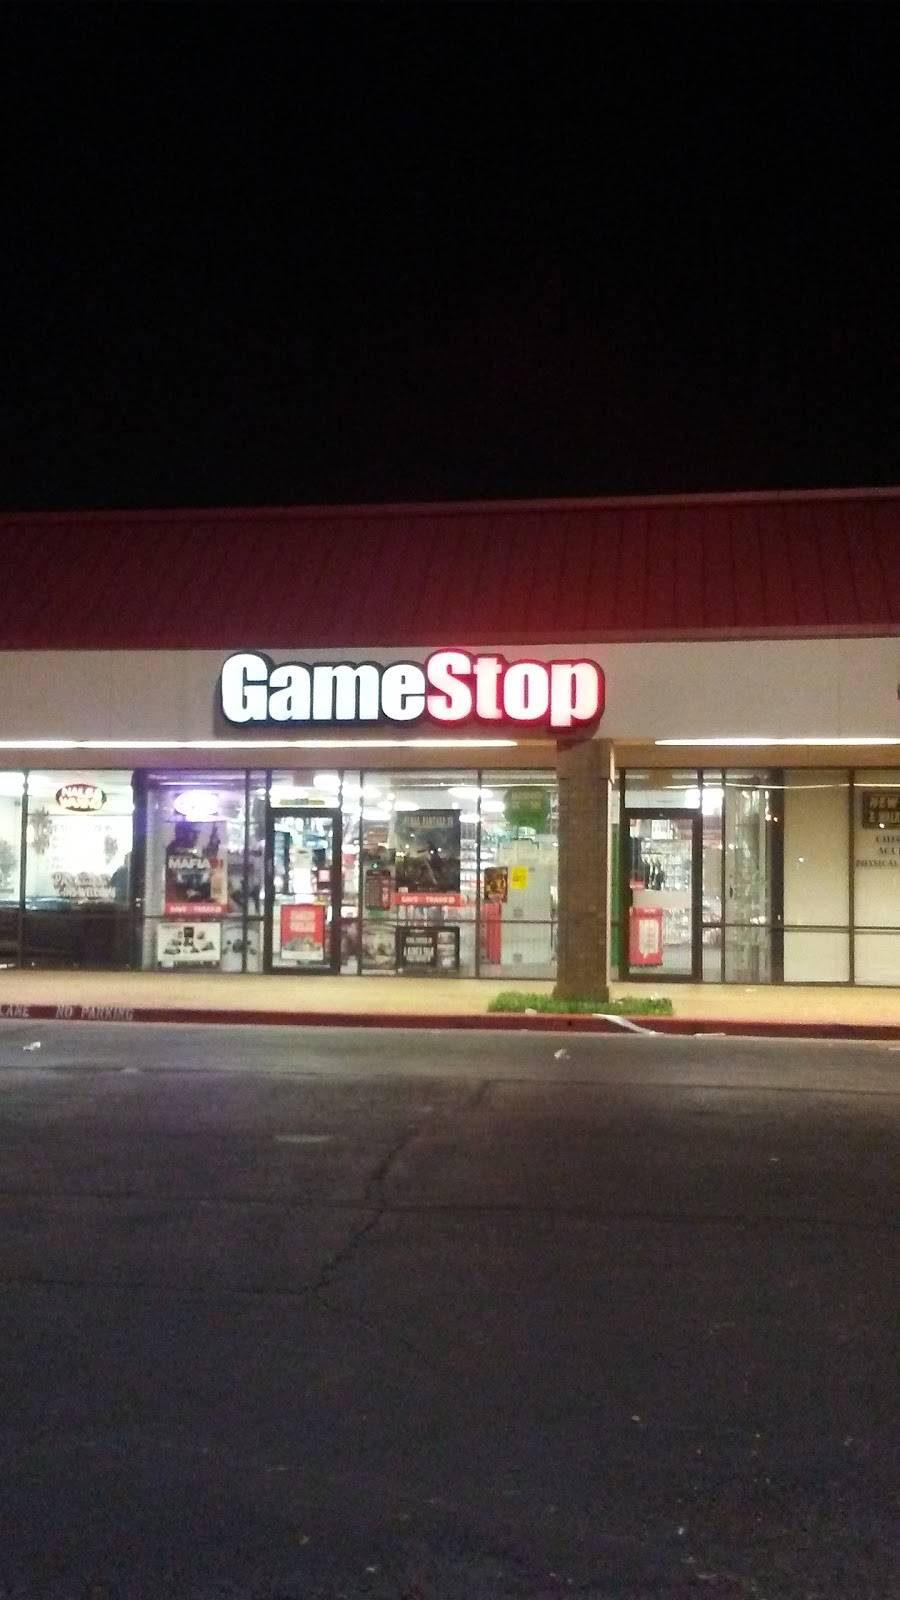 GameStop - electronics store  | Photo 5 of 6 | Address: 1120 E Parker Rd, Plano, TX 75074, USA | Phone: (972) 633-6444